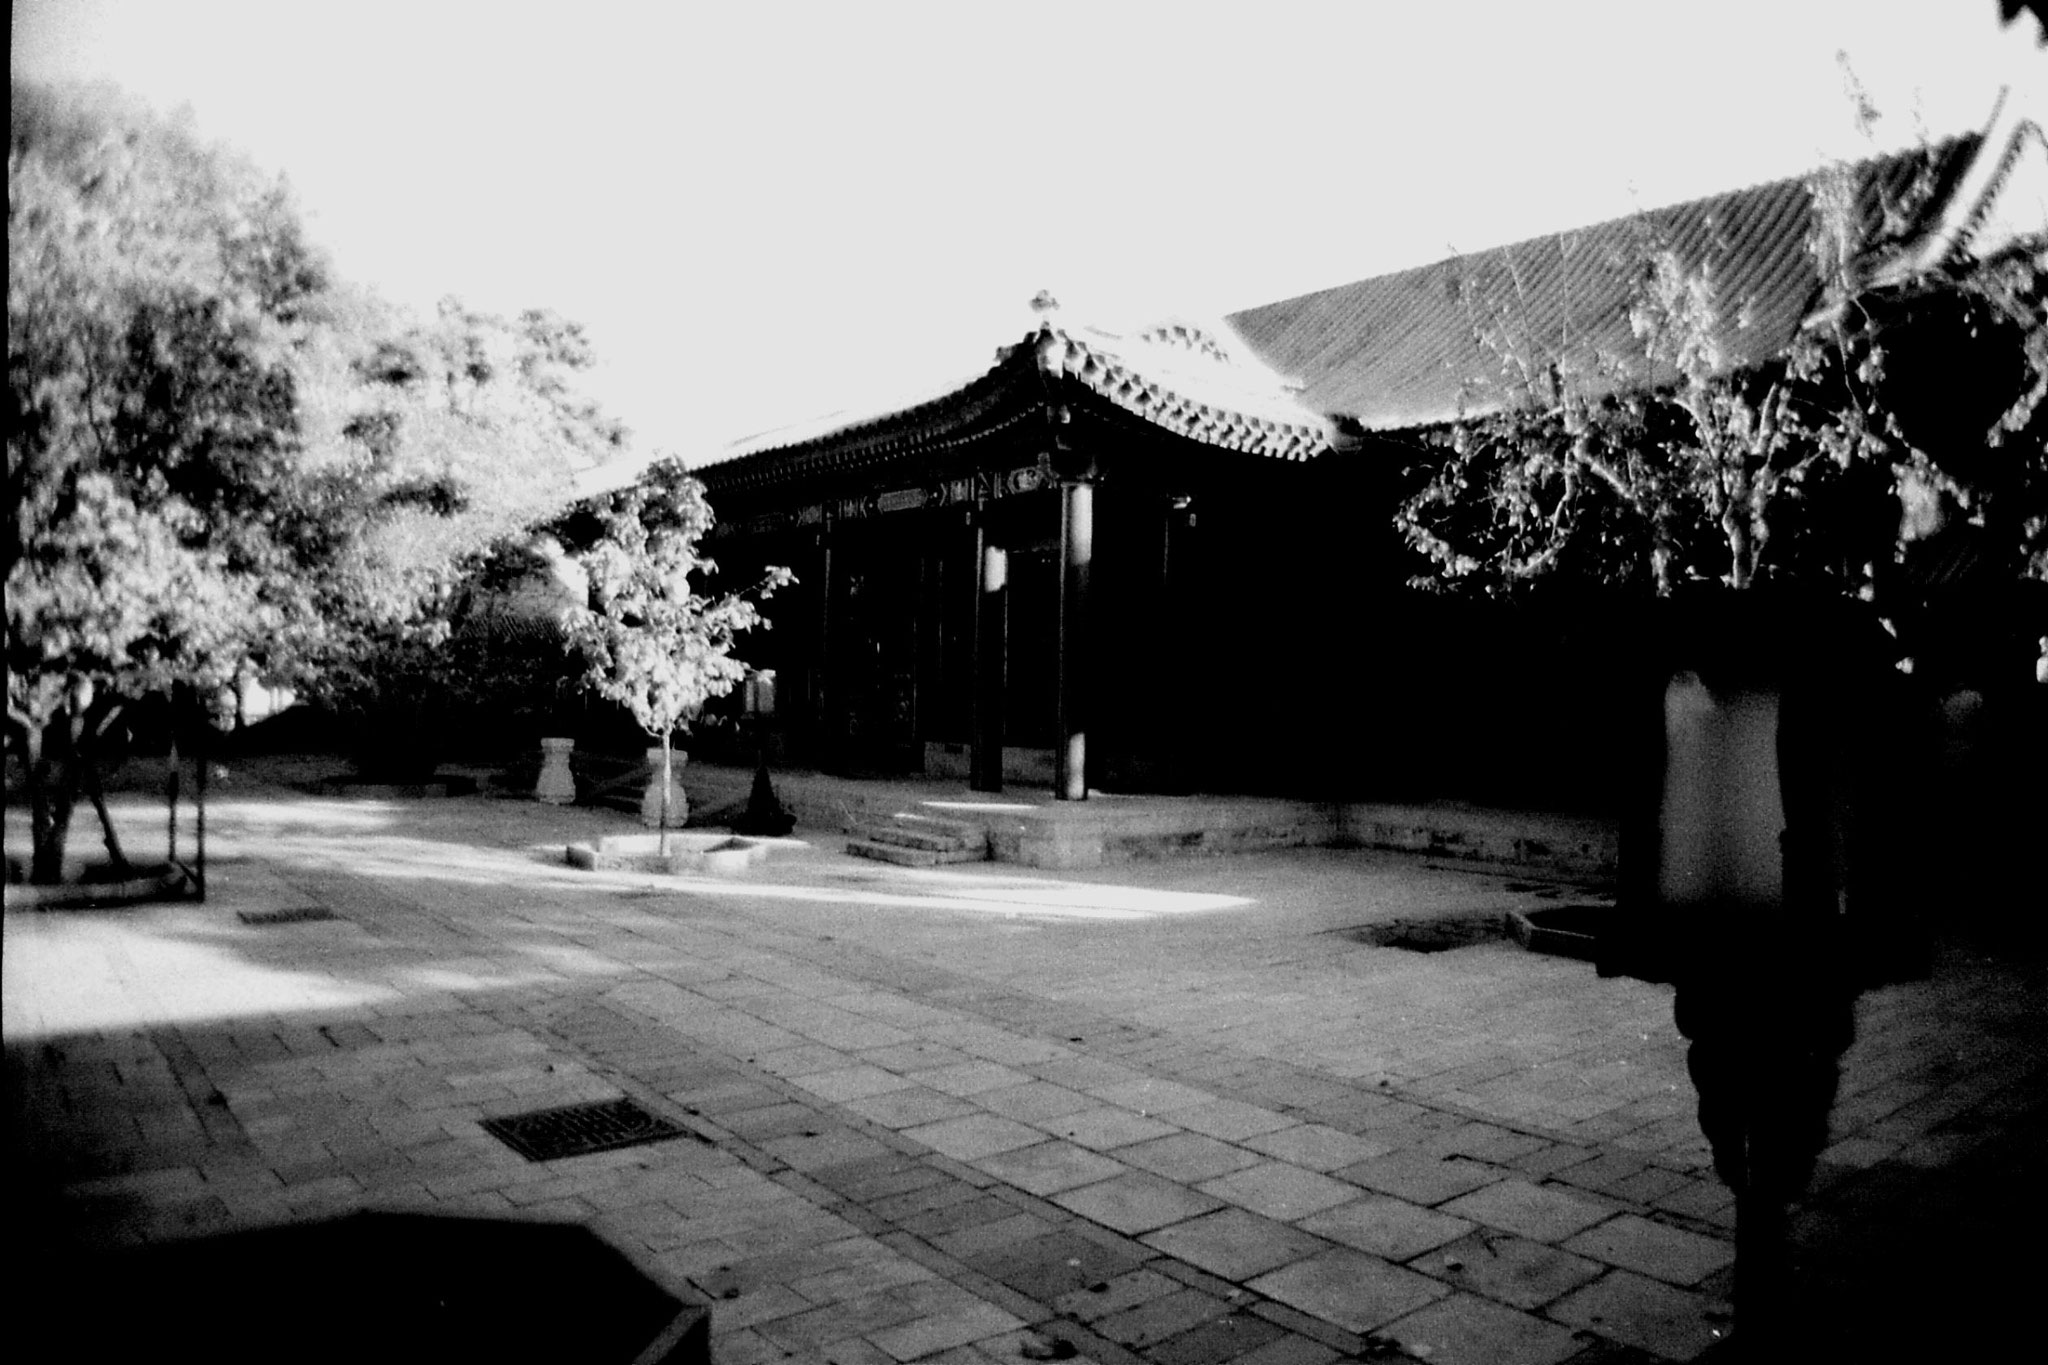 1/11/1988: 14: Summer Palace, Hall of Joyful Harmony